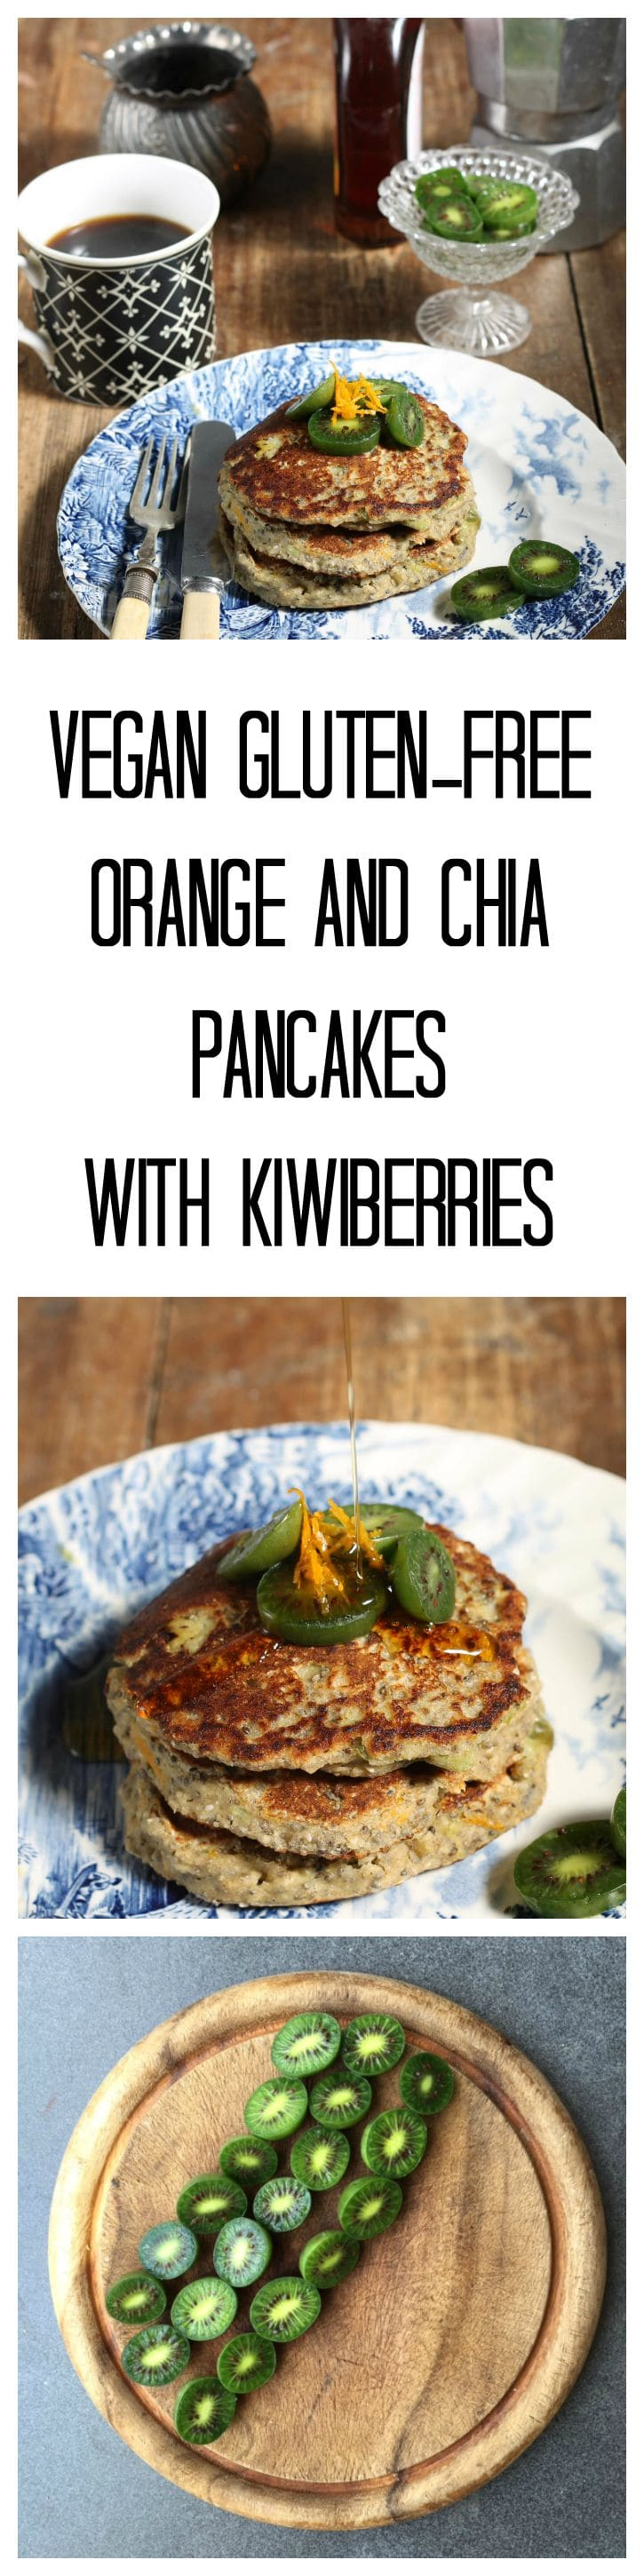 Zesty Orange and Chia Pancakes with Kiwiberries (vegan, gluten-free) | Veggie Desserts Blog